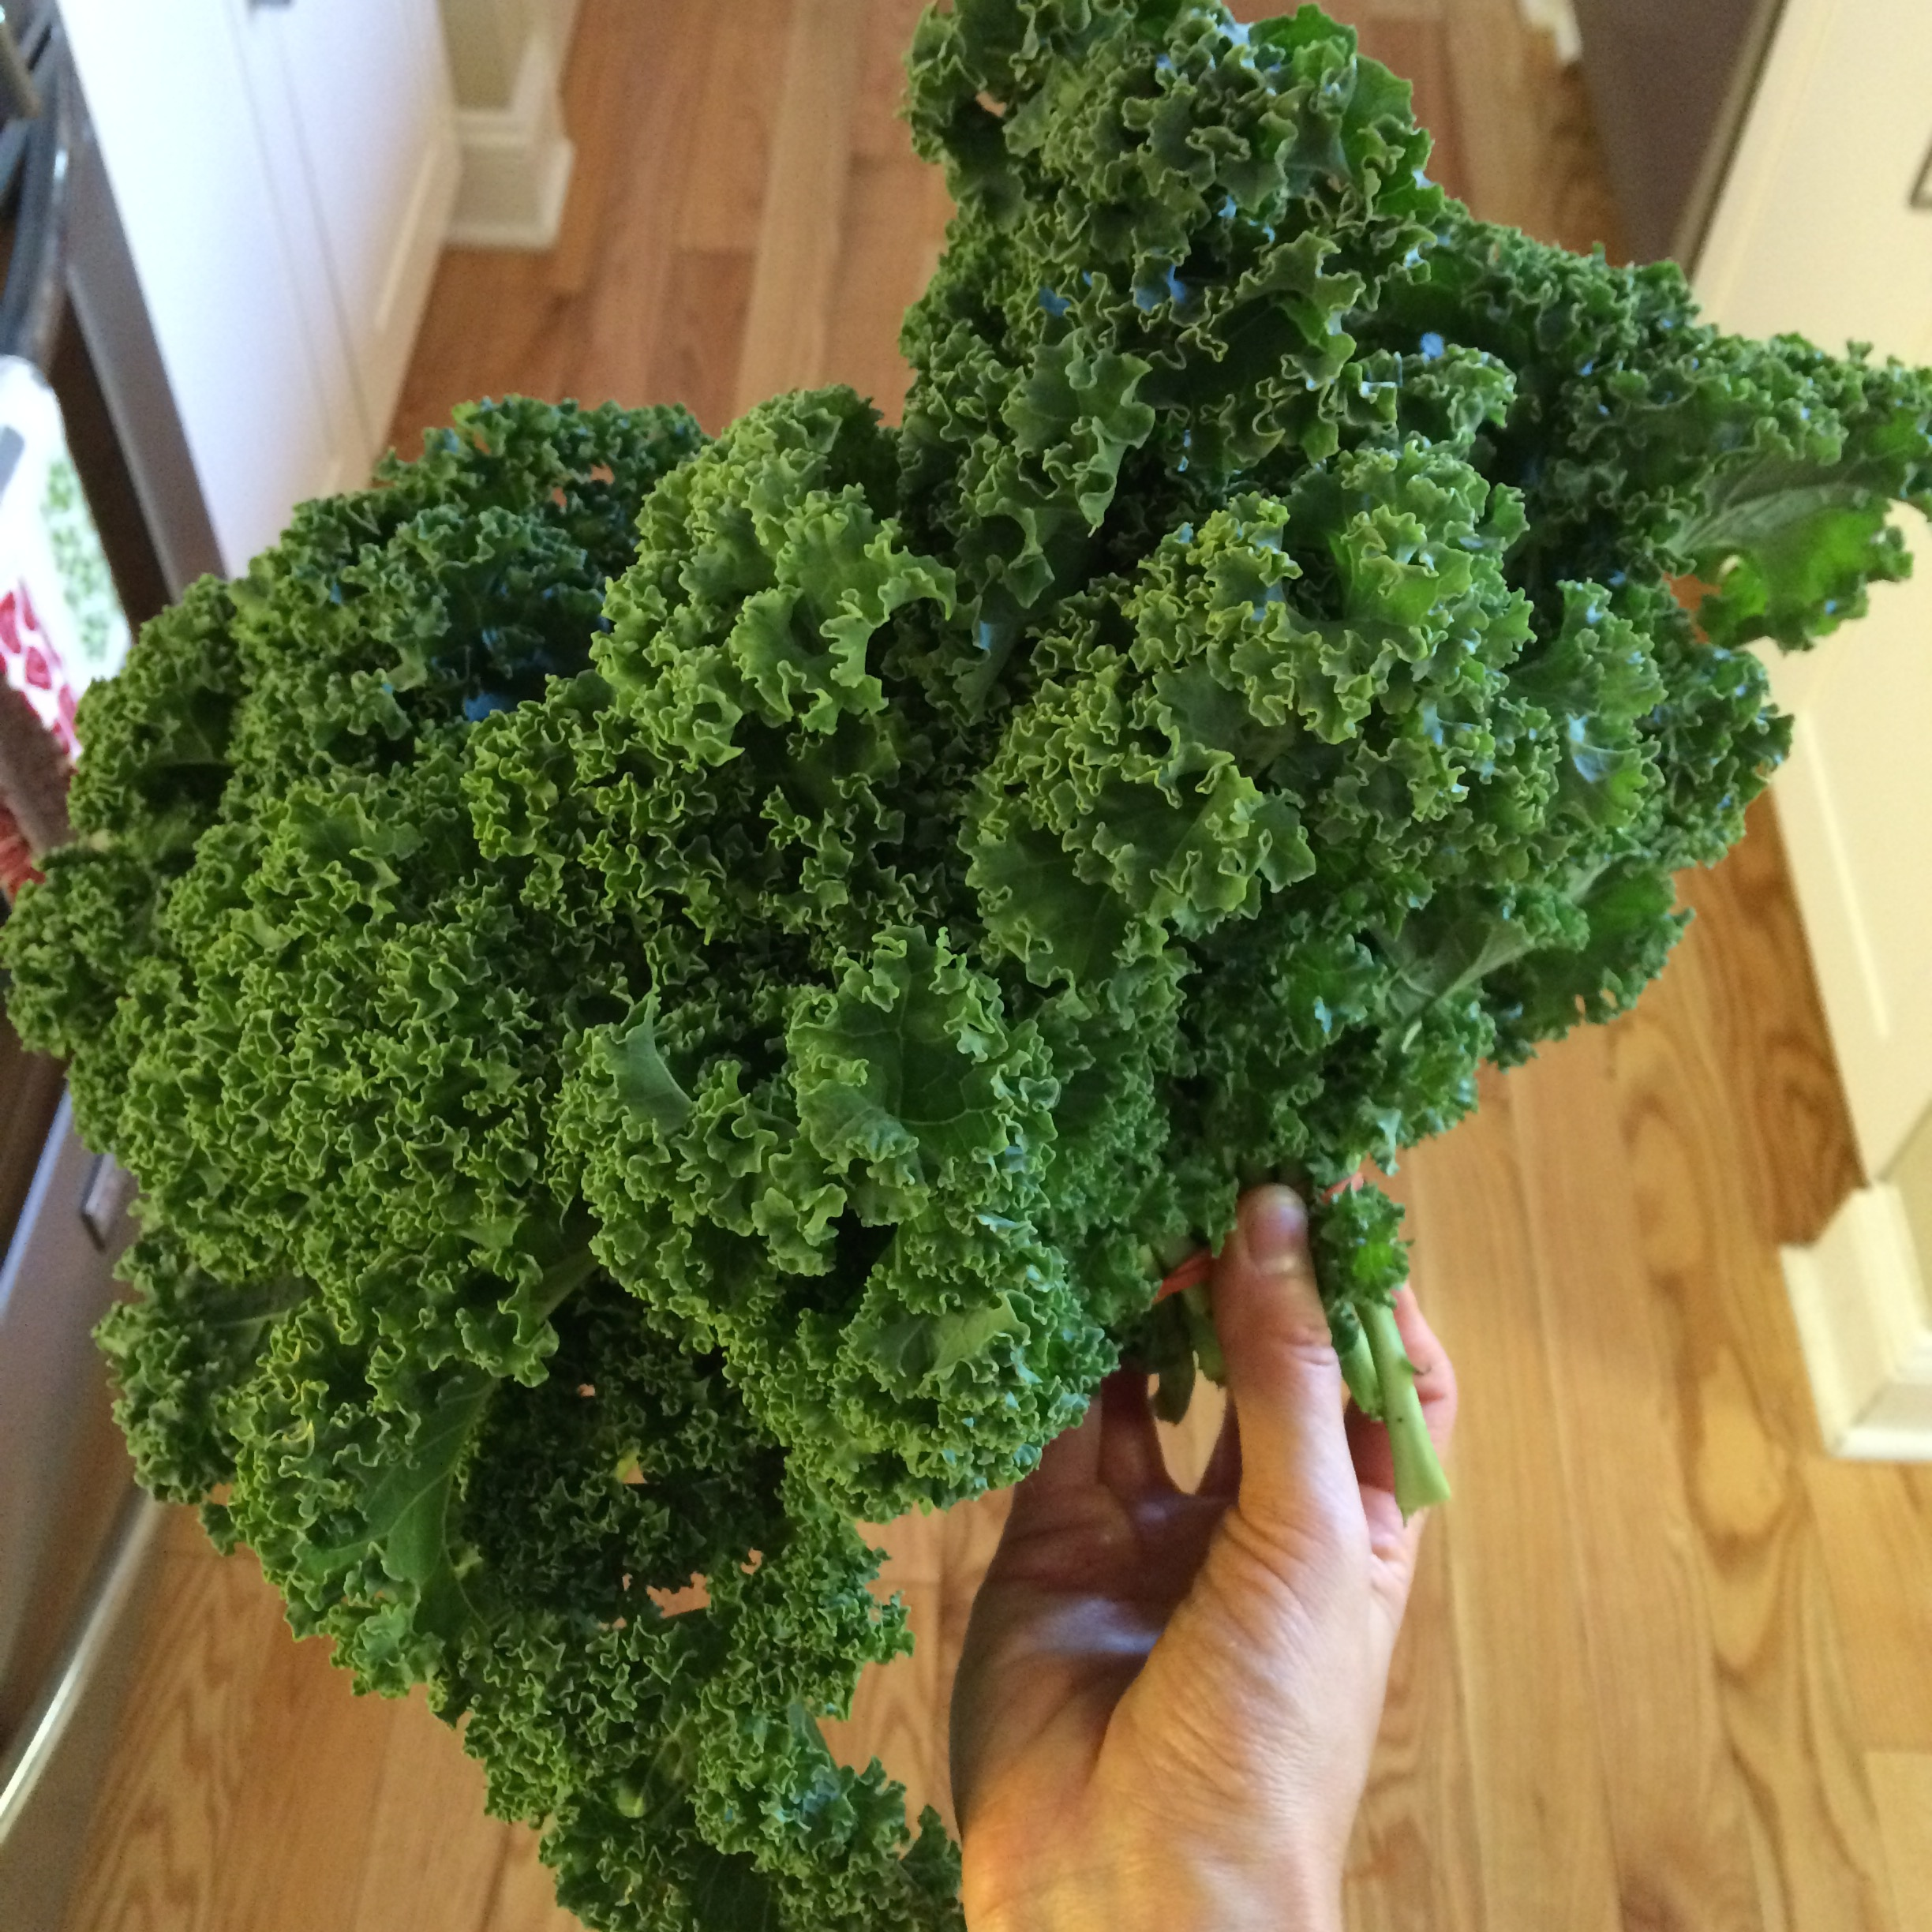 I picked up my kale at the farmers market! Make sure you rinse it really well if you are buying a big bunch like this.